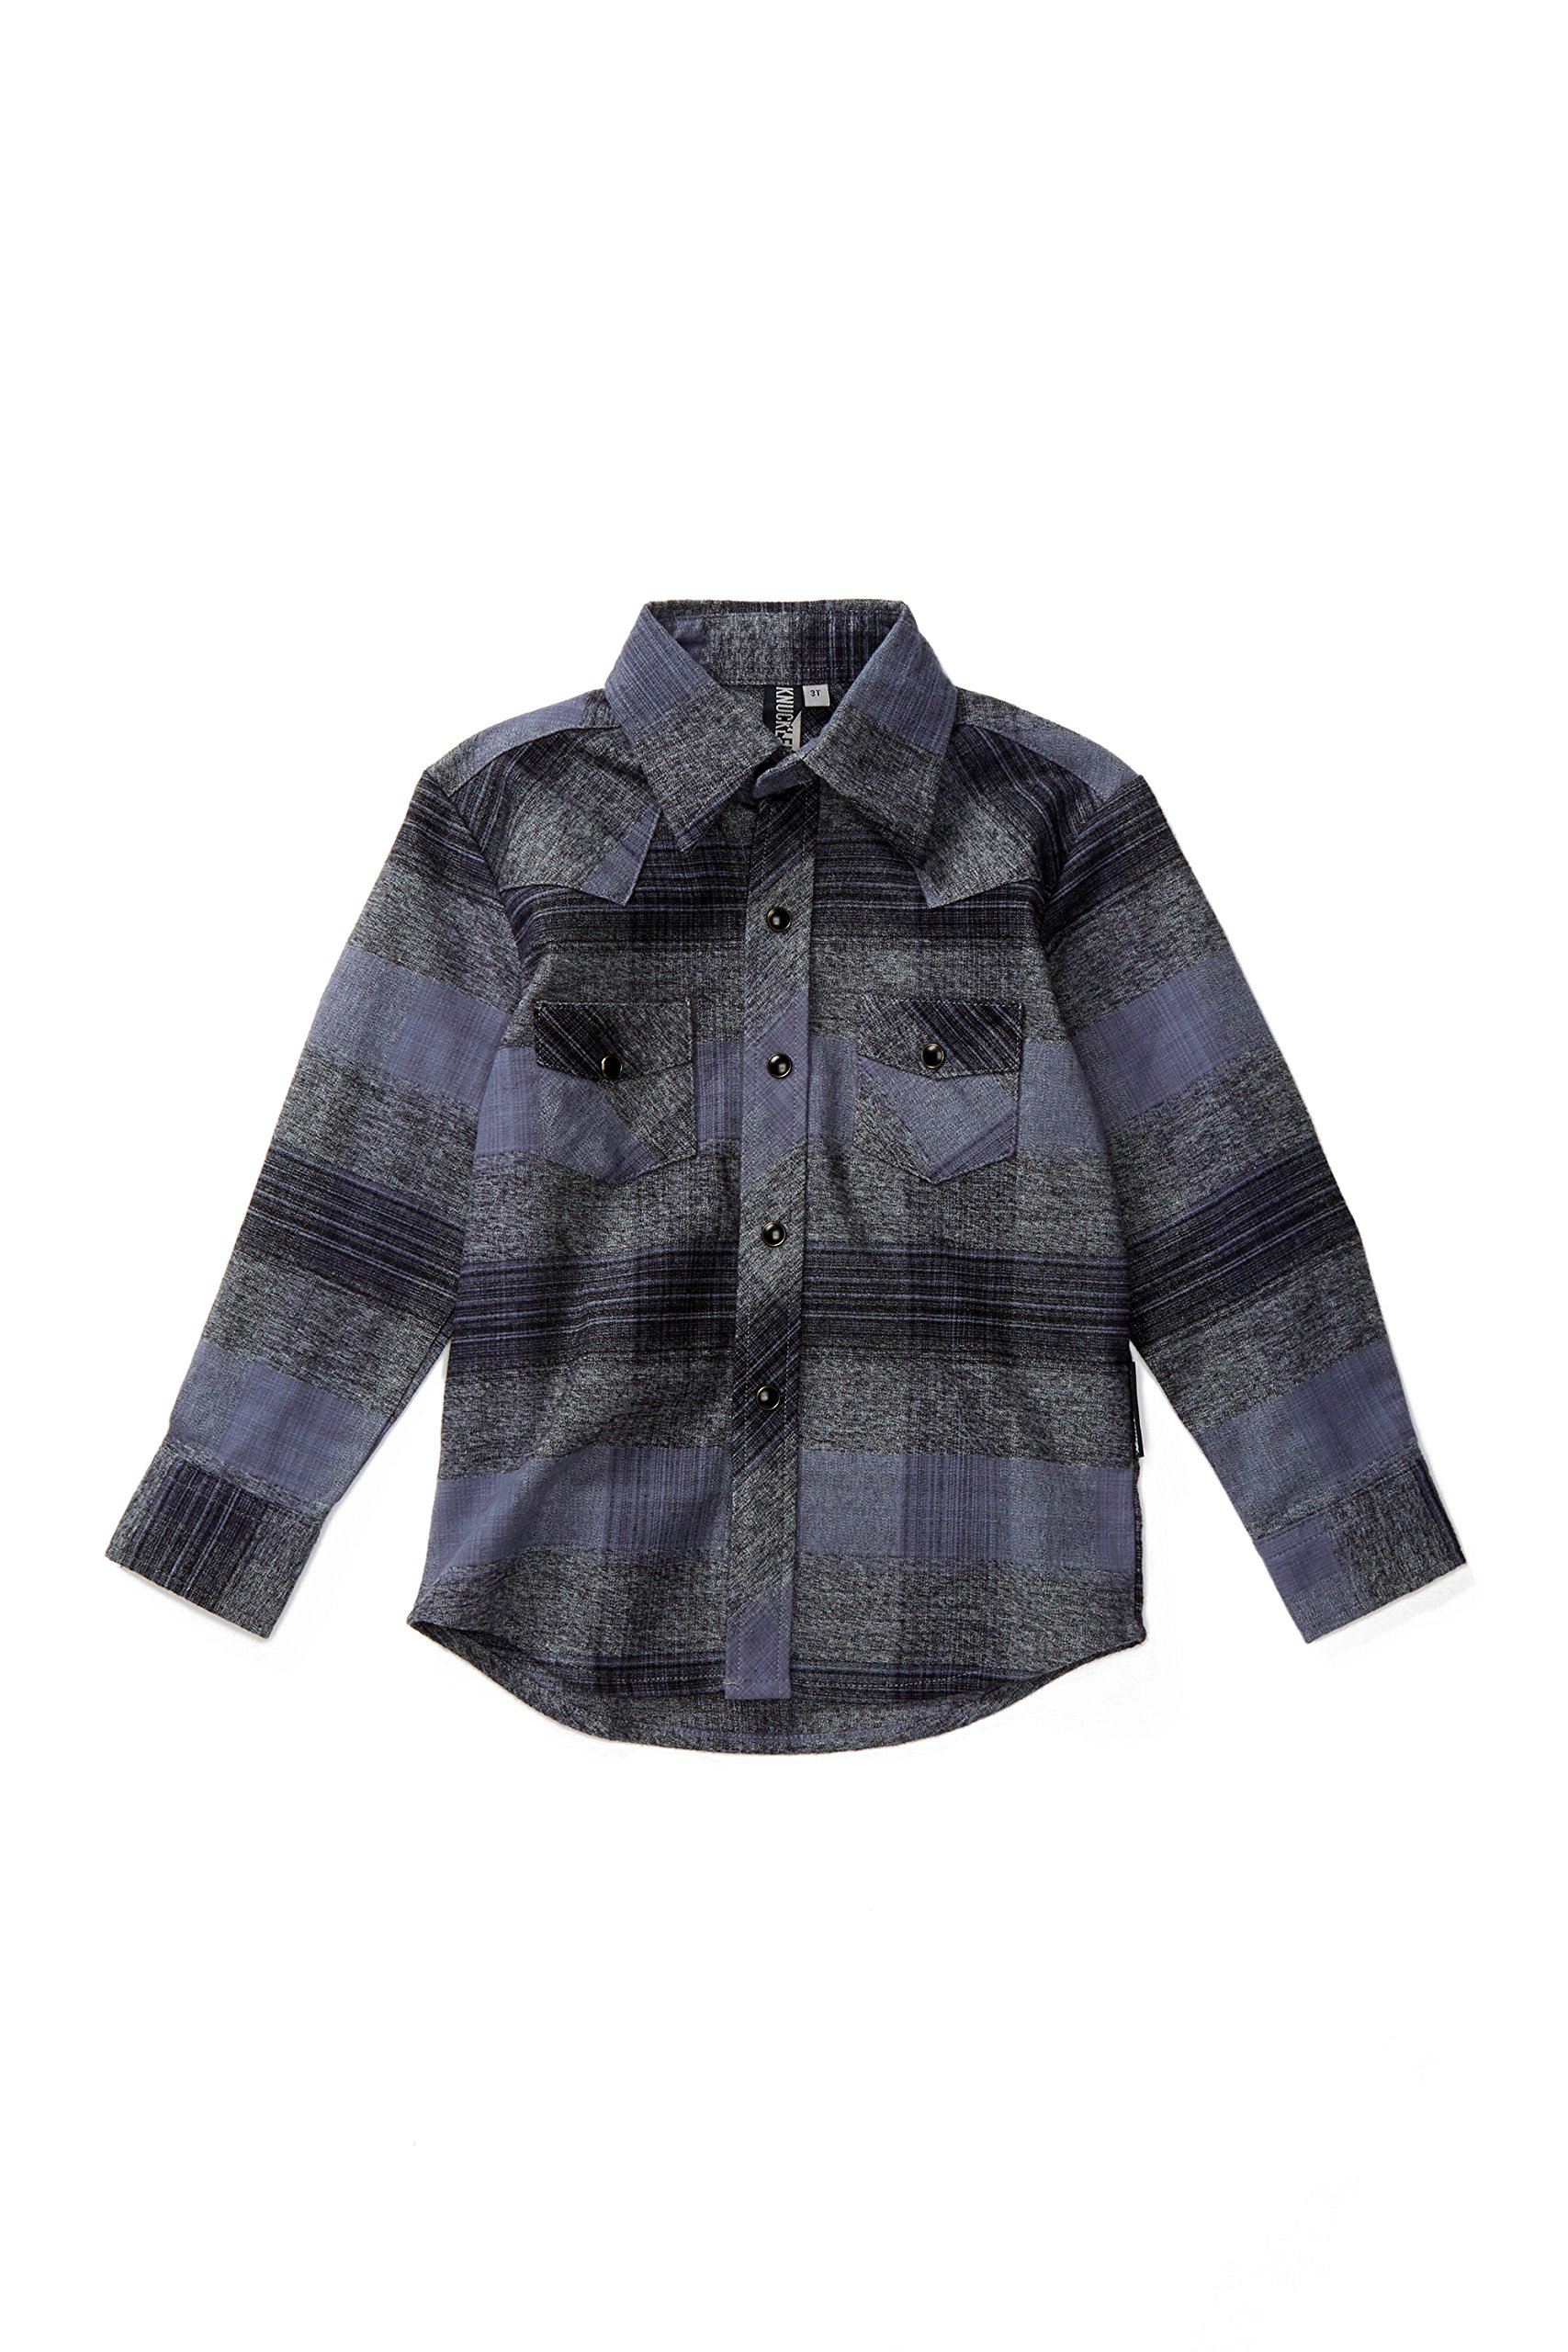 Knuckleheads Rockabilly Button Down Plaid Shirts (3 Yrs, Grey) by Born to Love (Image #1)